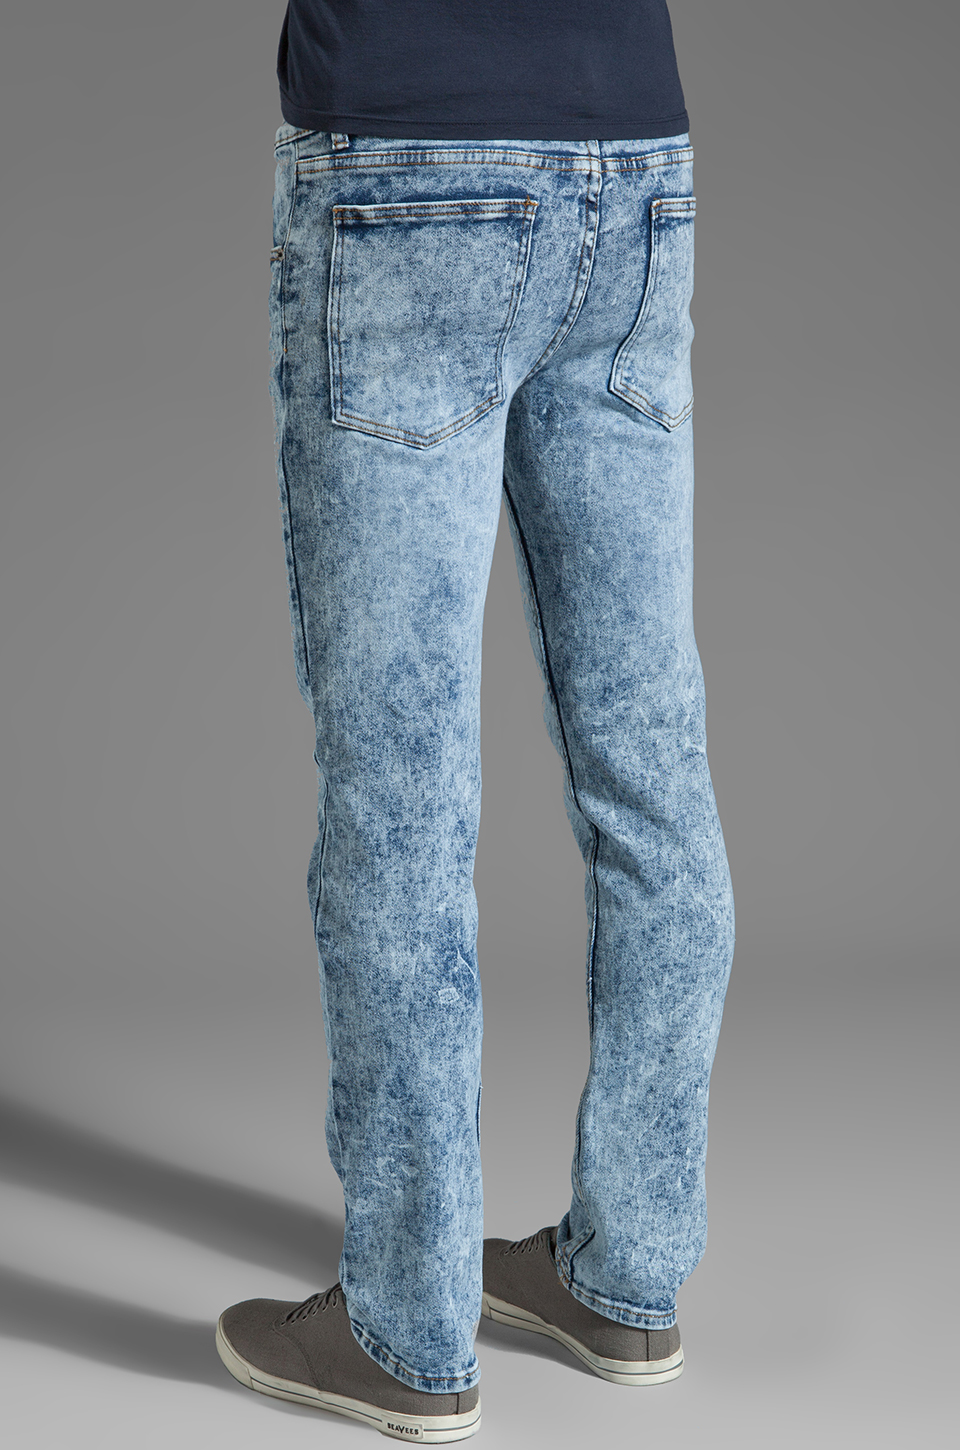 Cheap Monday Tight Jeans in Stone Used